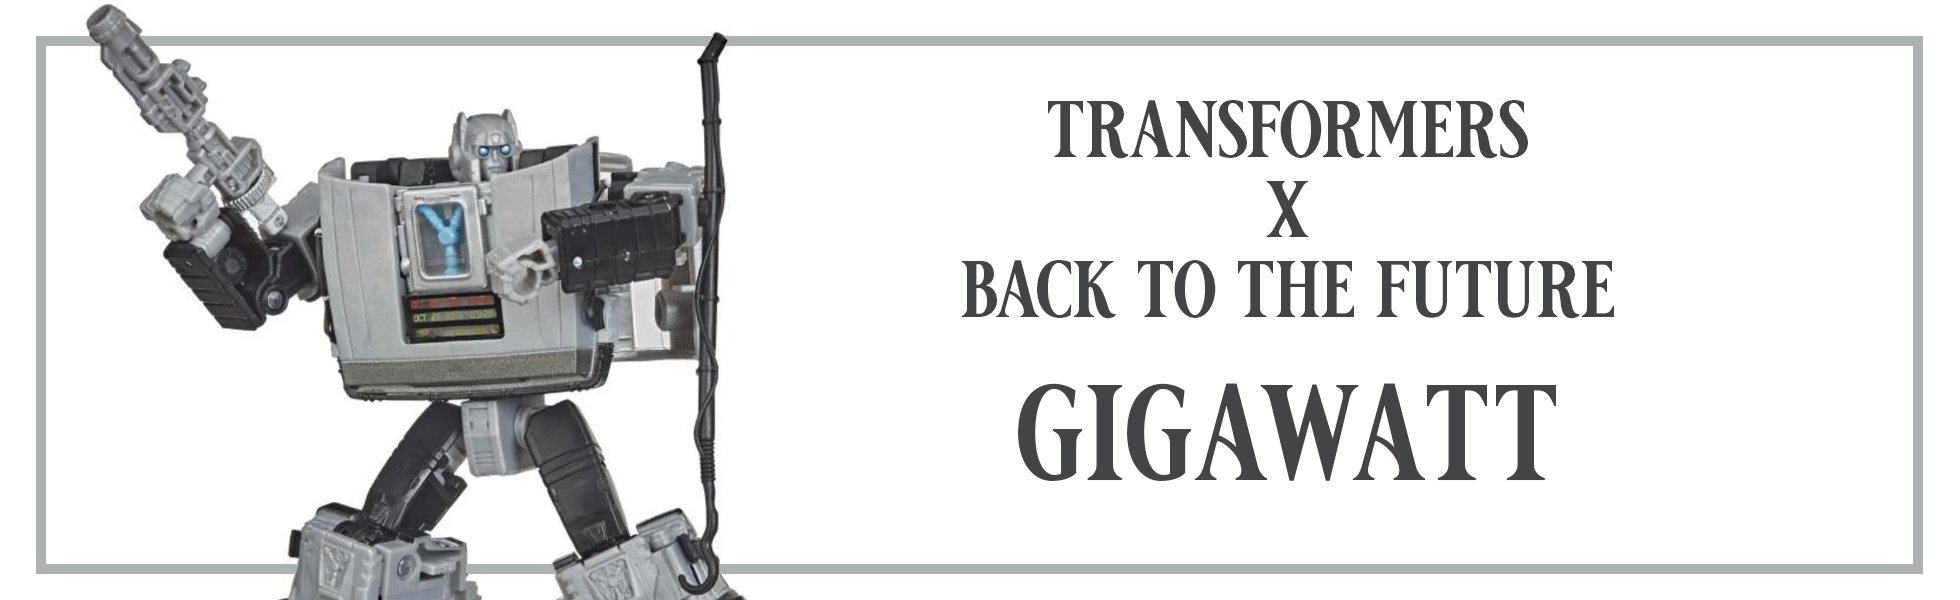 Transformers x Back to the Future Gigawatt Action Figure